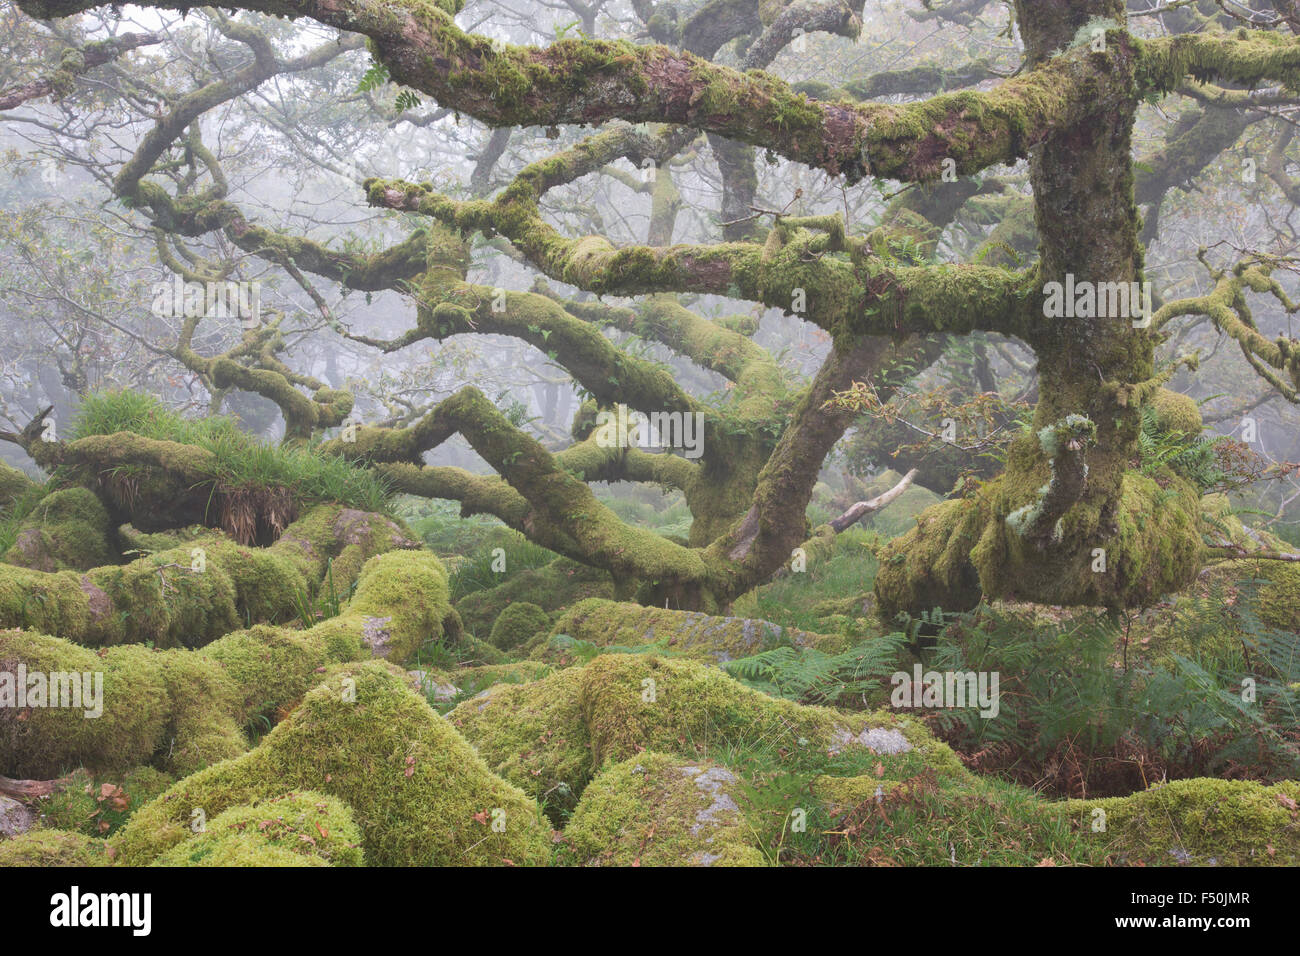 Gnarled ancient oak trees in Wistman's Wood in Dartmoor National Park on a foggy morning, - Stock Image